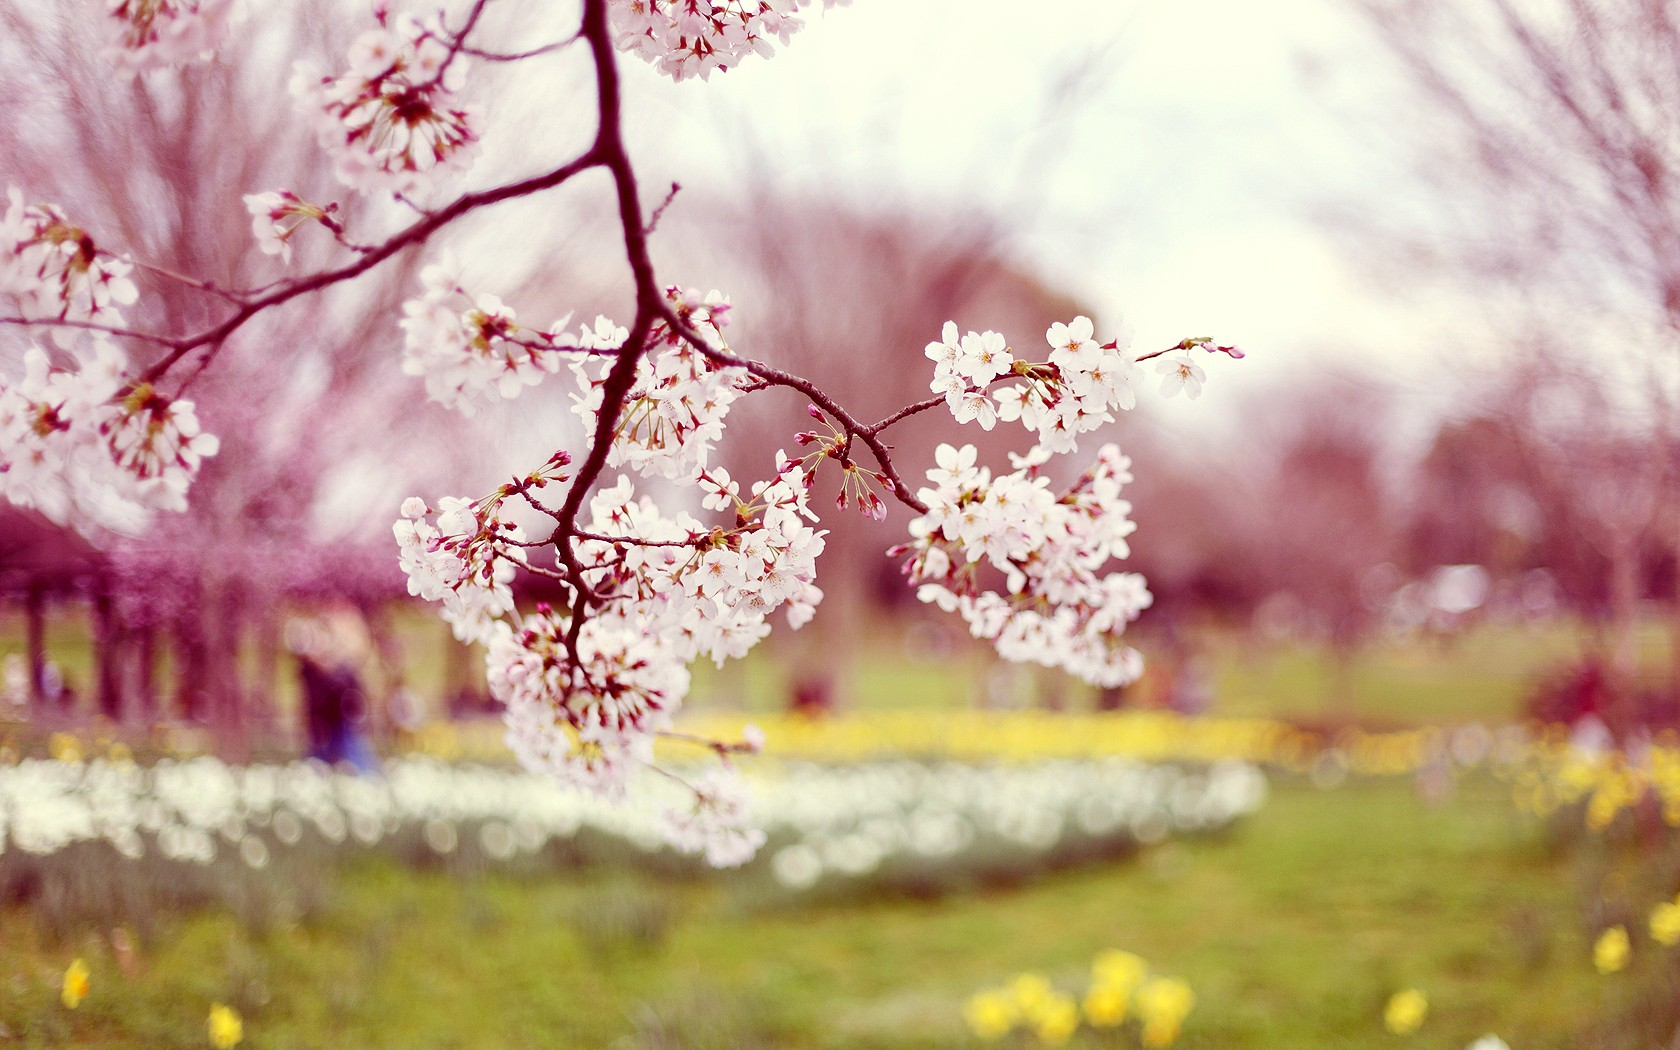 Flowers   Spring Background 149466   HD Wallpaper Download 1680x1050